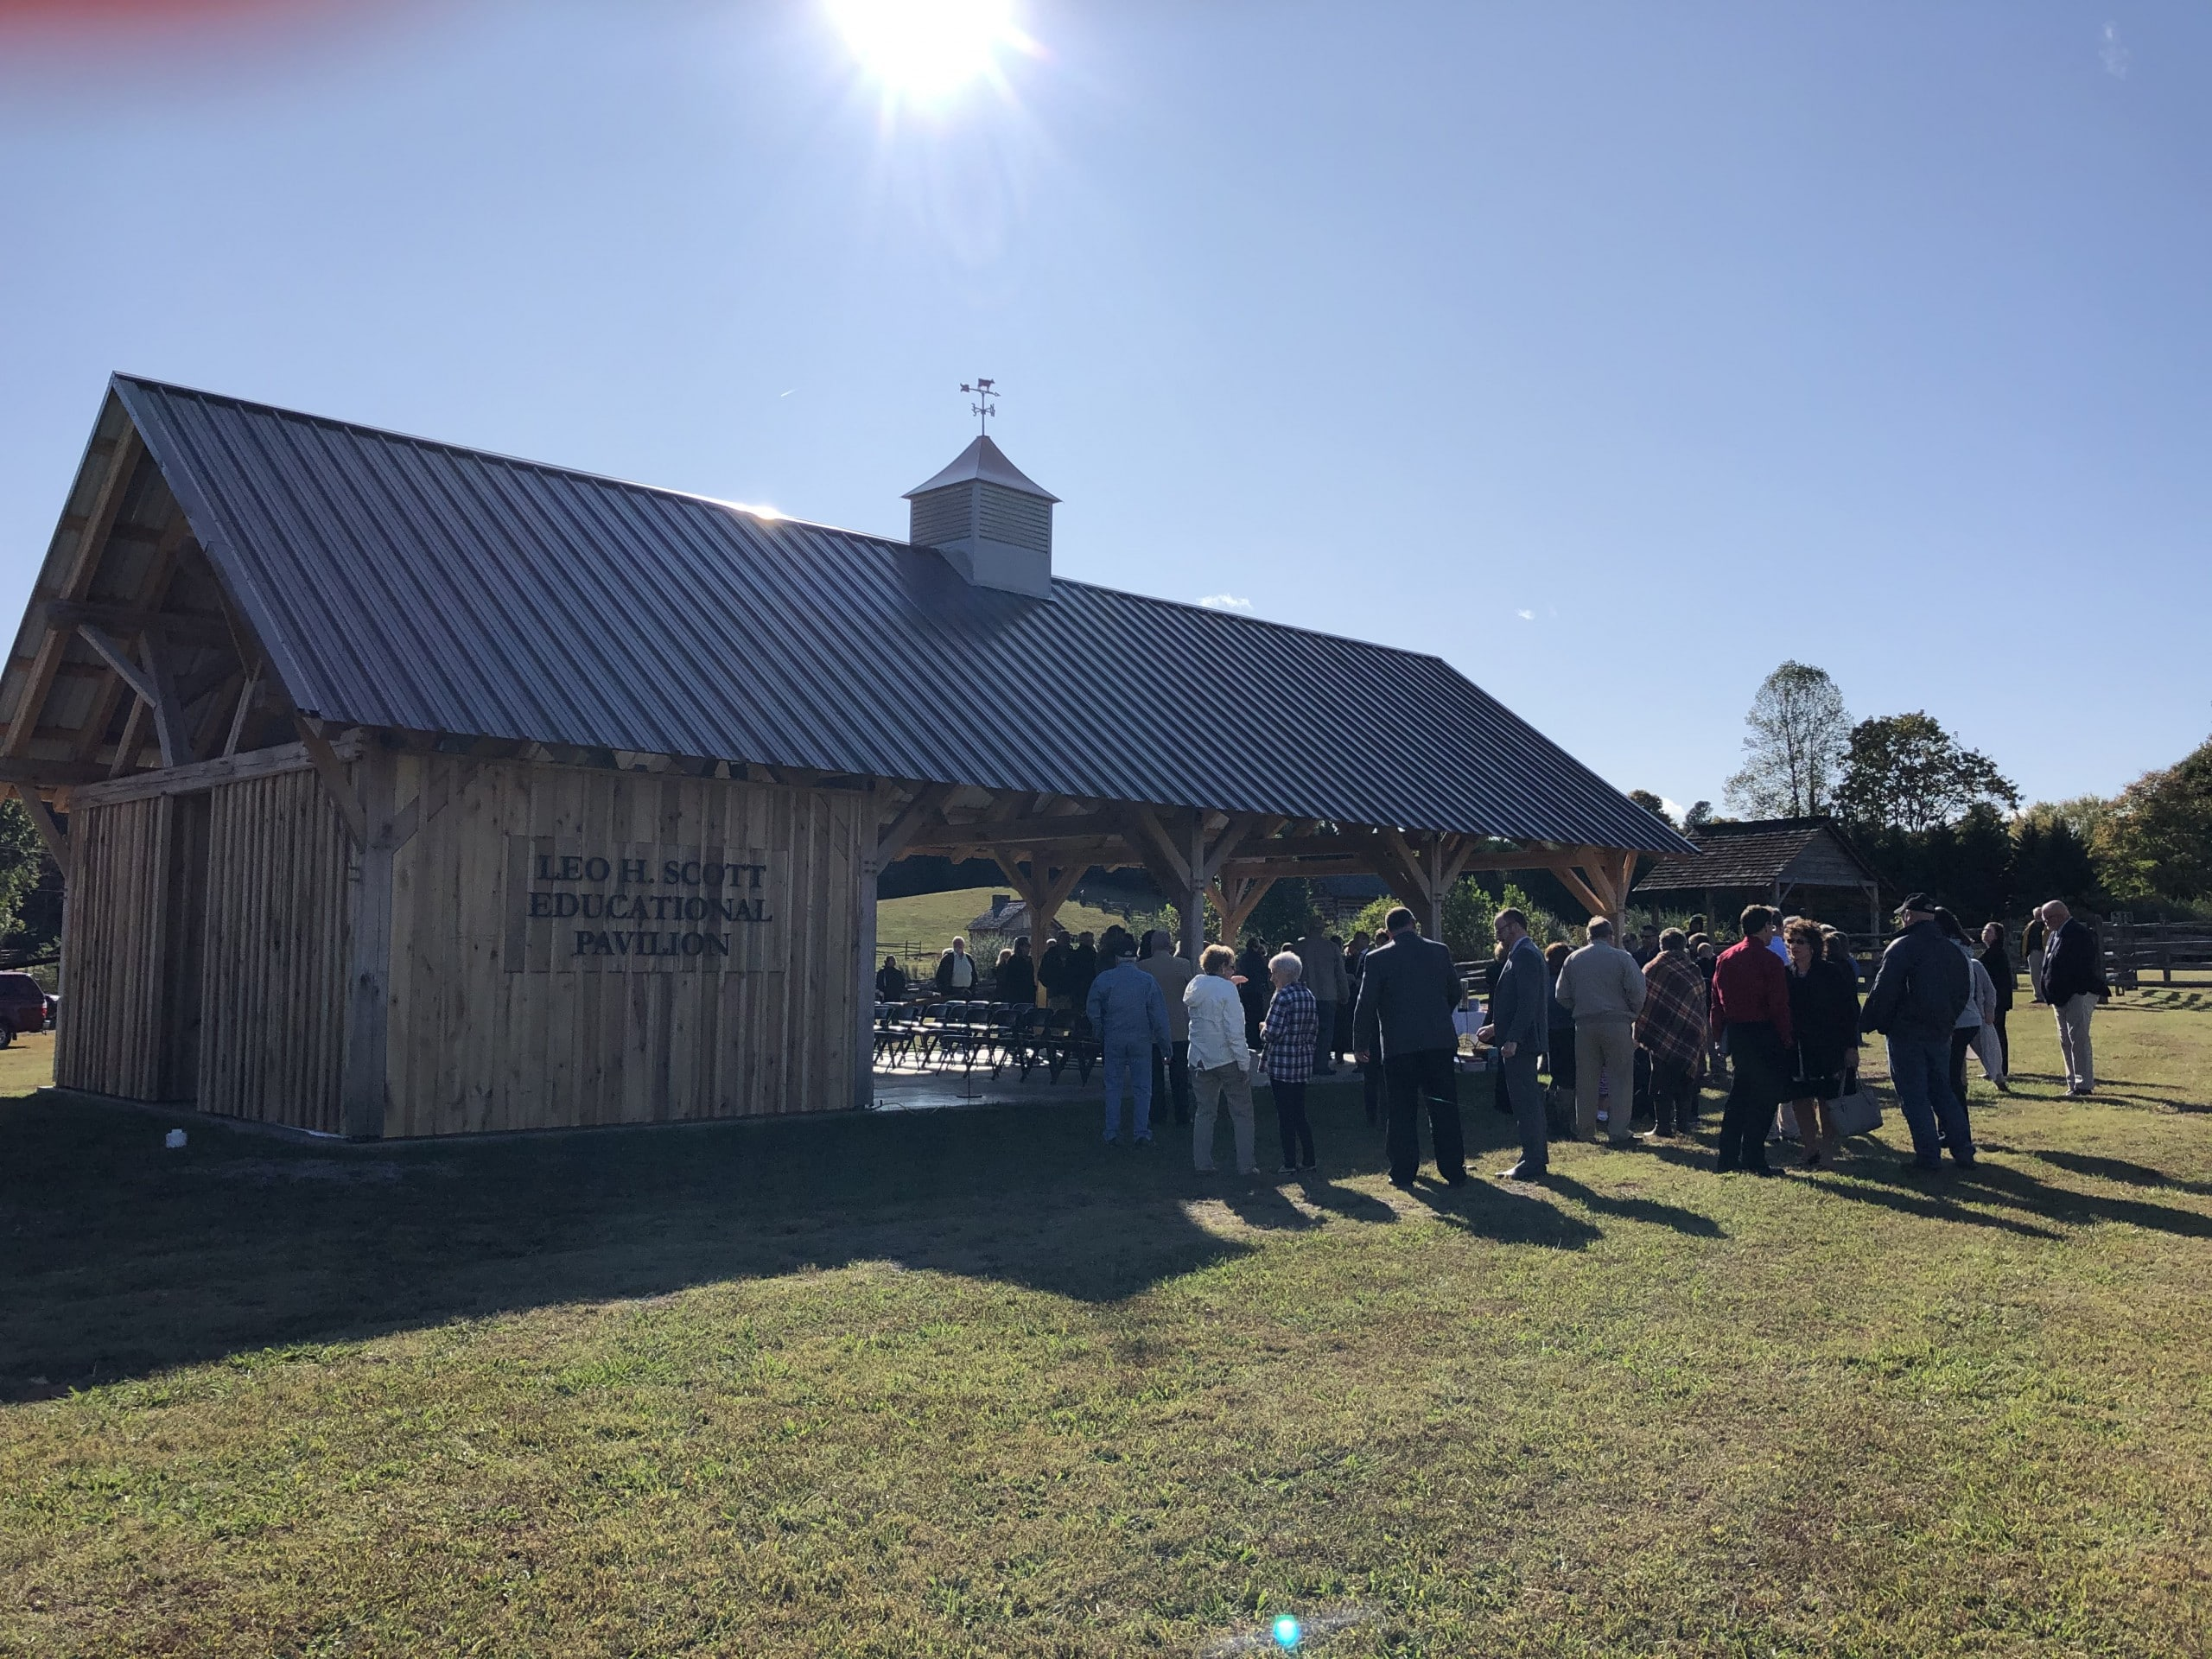 The Leo H. Scott Educational Pavilion ribbon cutting was held October 16, 2019.